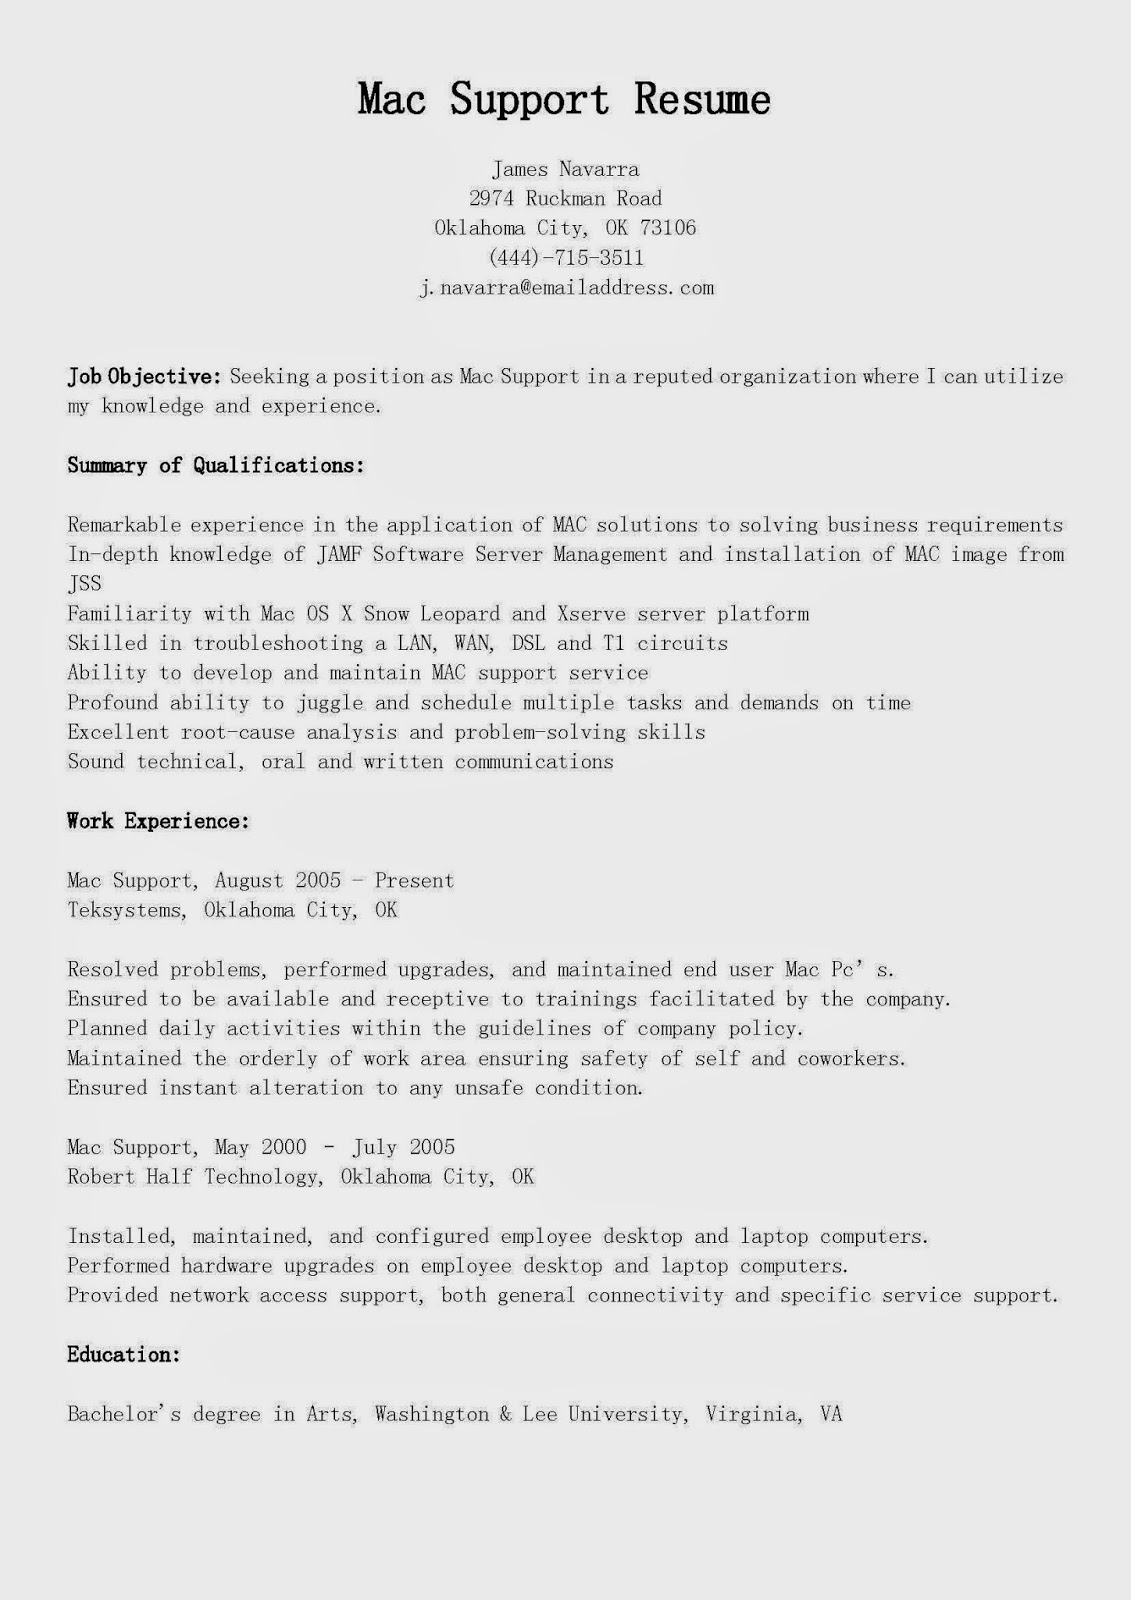 Resume Samples: Mac Support Resume Sample